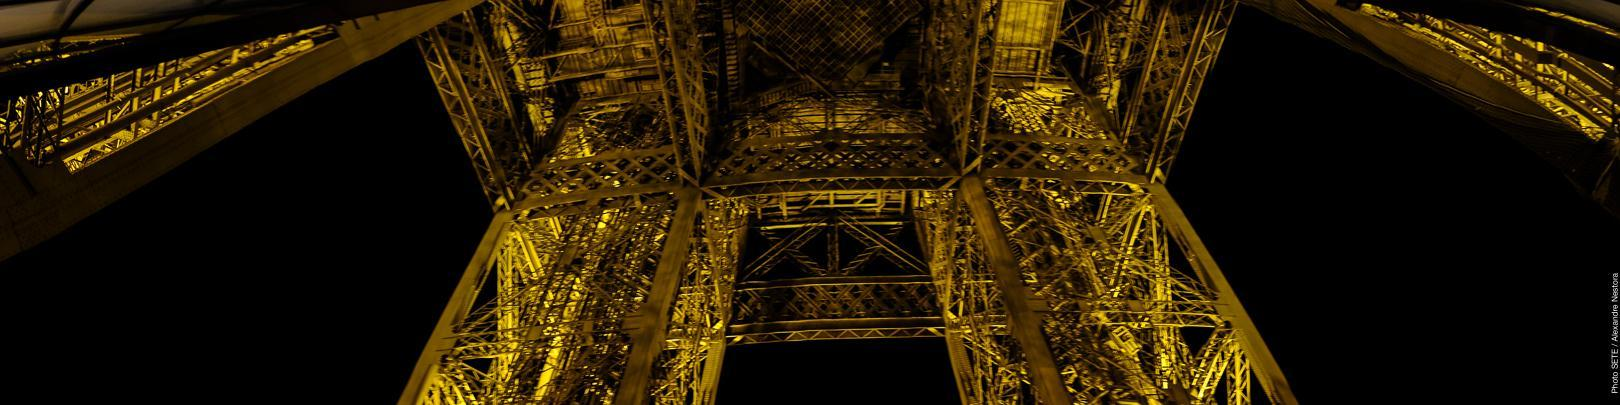 Eiffel Tower view at night